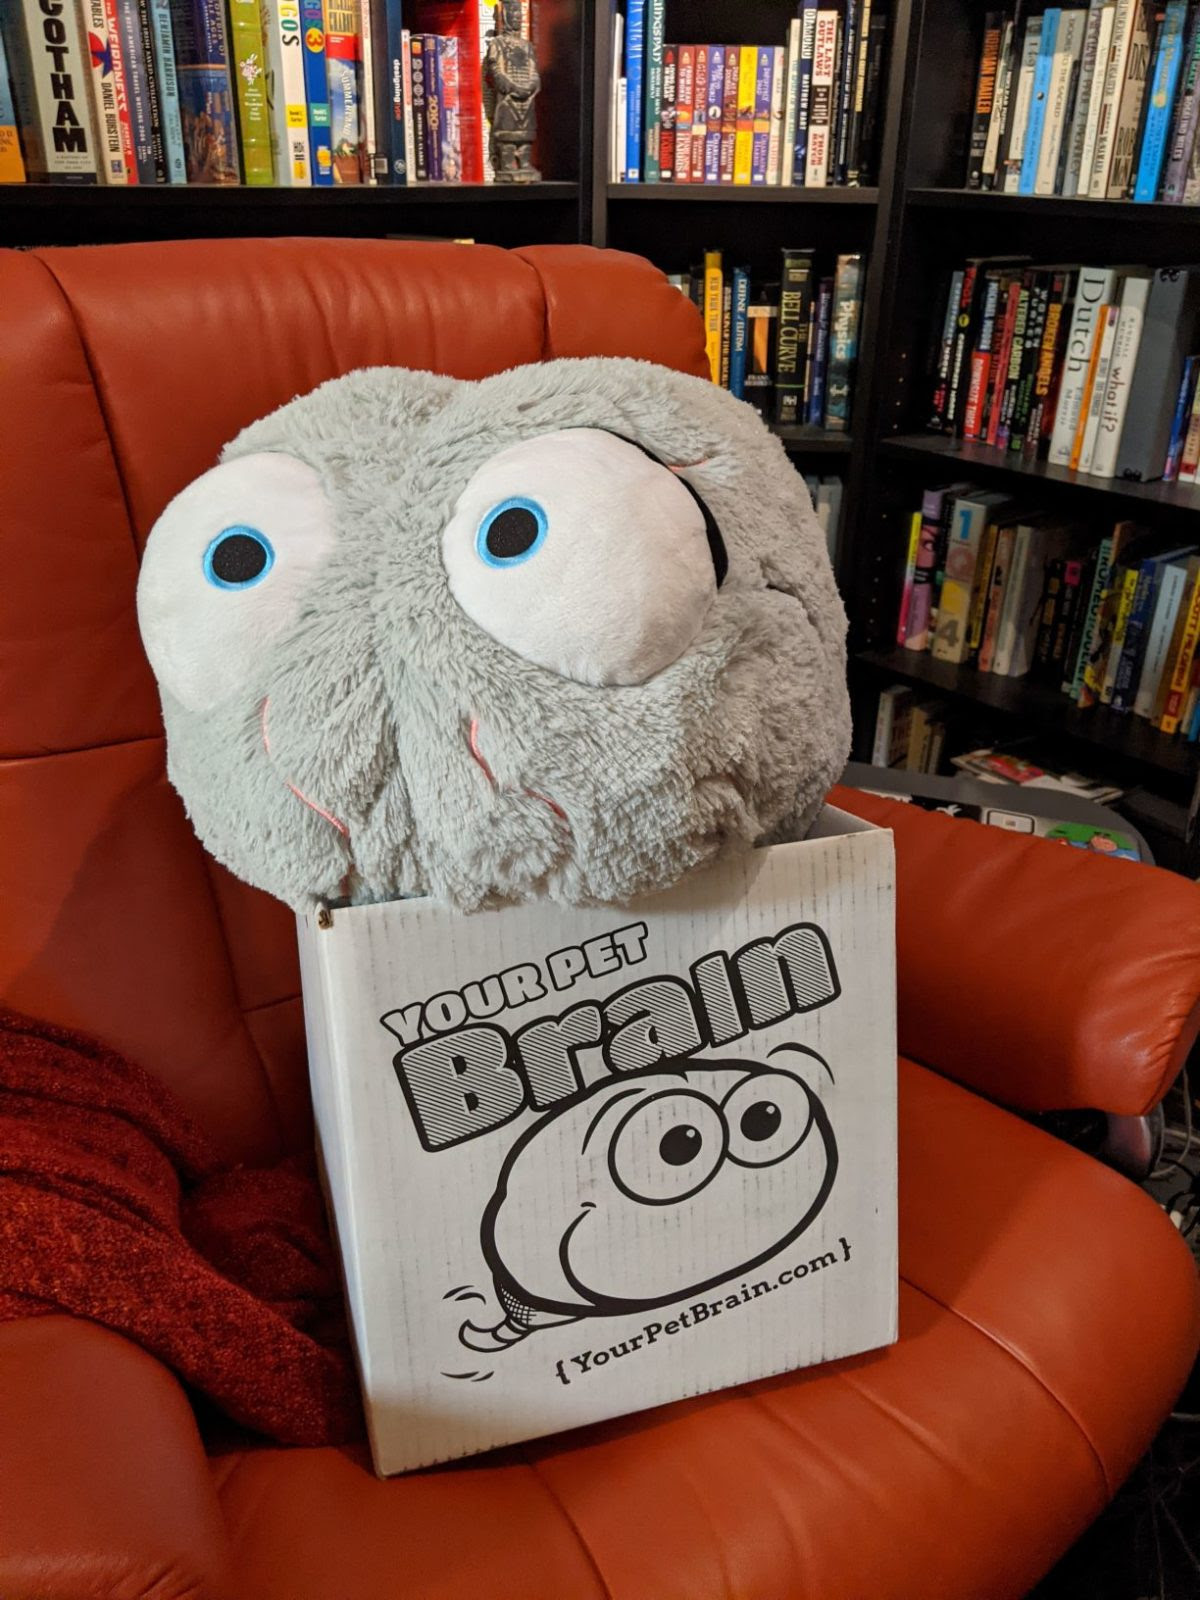 A gray plush brain with big eyes sits on the box he sipped in. The box has an illustration of him.